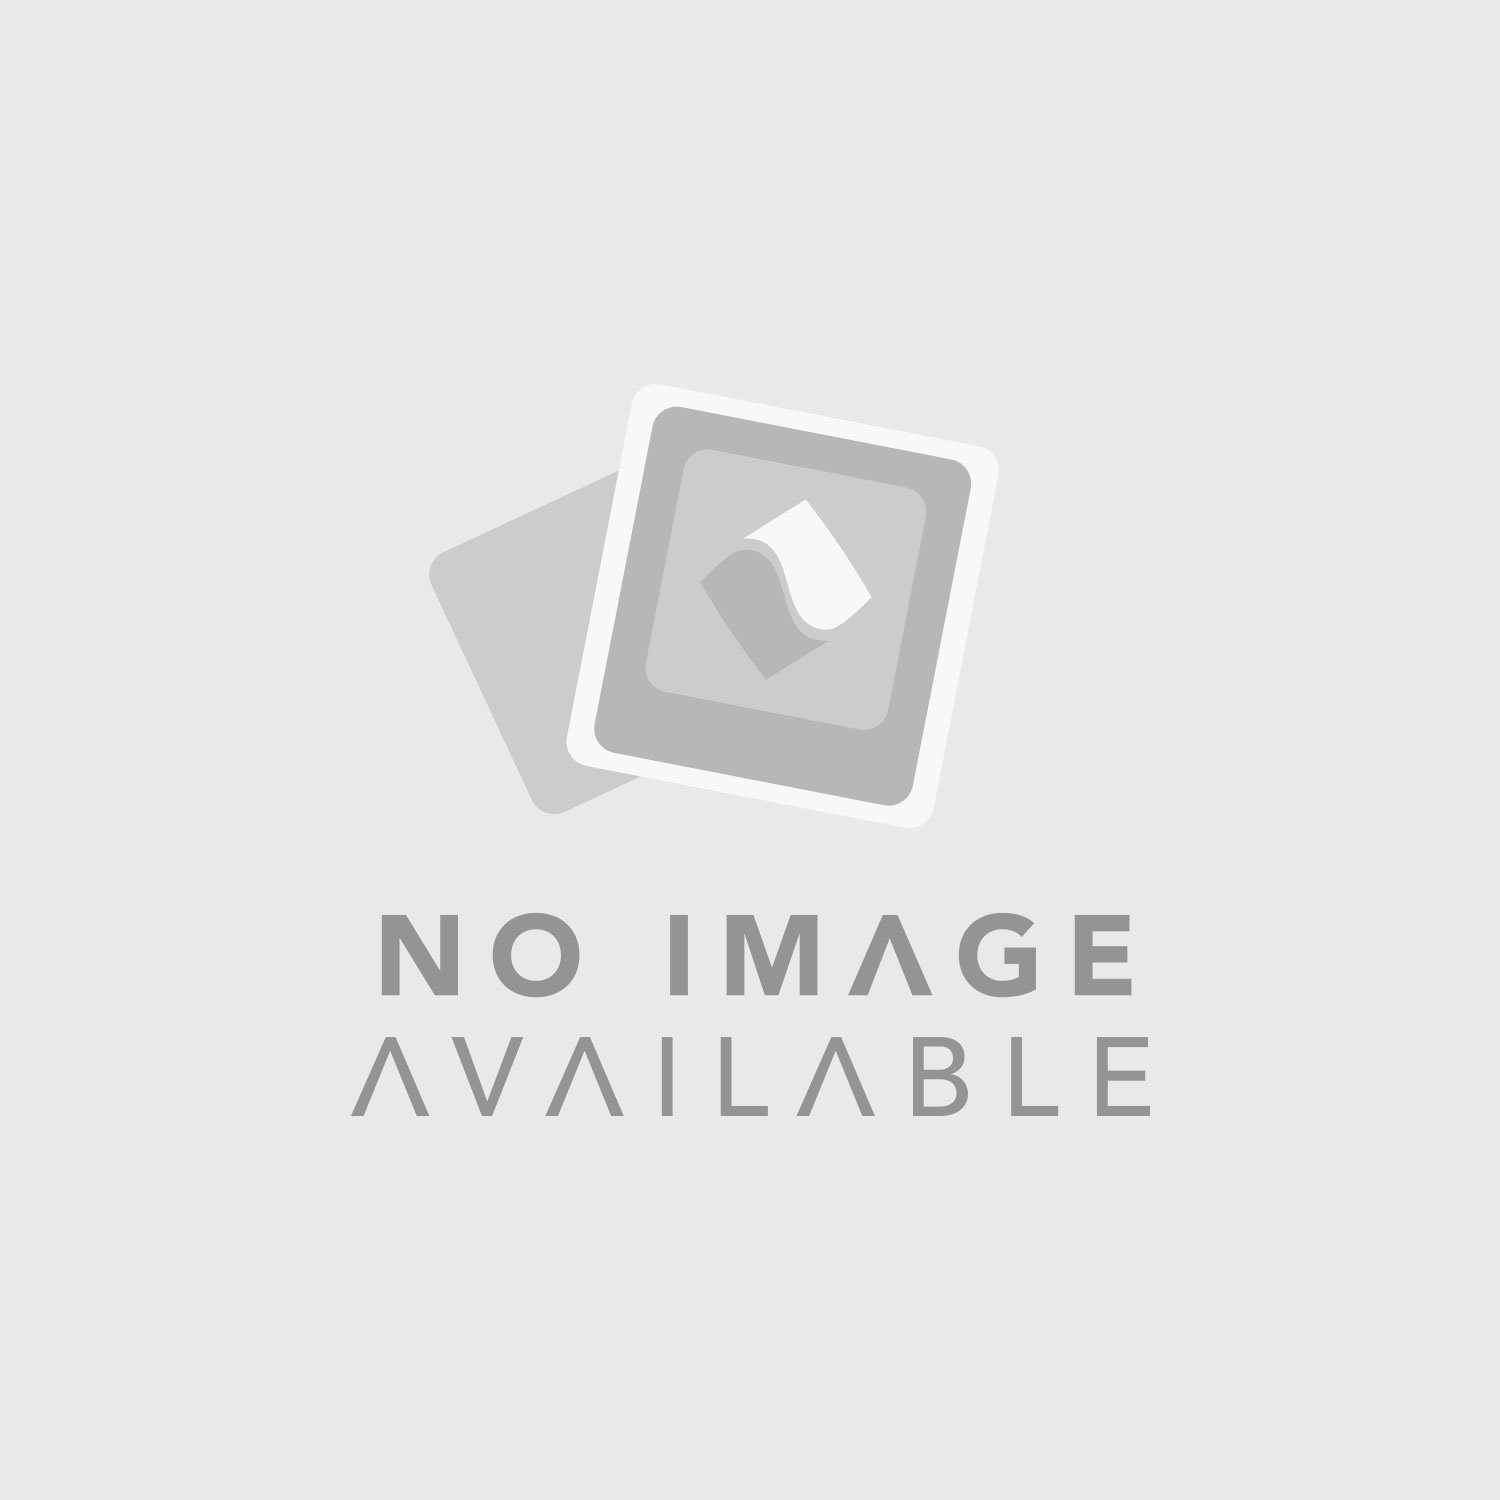 Shure MOTIV MVI Single-Channel USB Audio Interface (Silver)